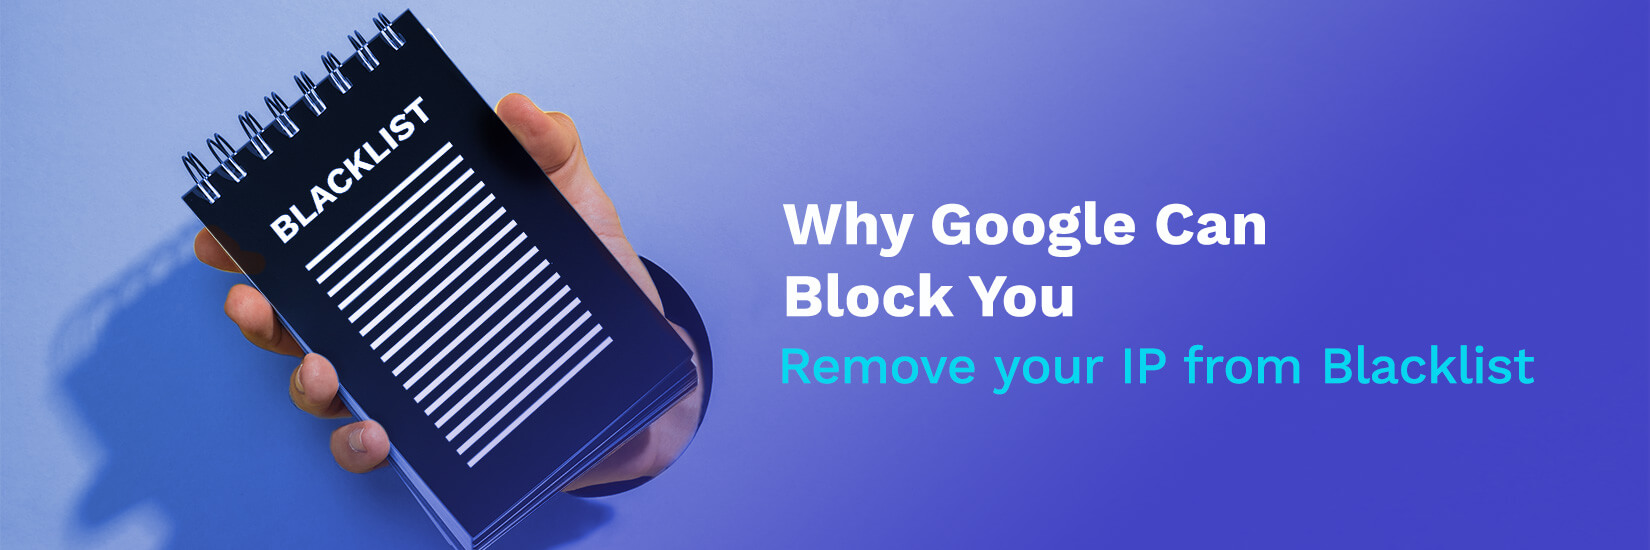 How to Remove Your IP Address from Gmail's Blacklist